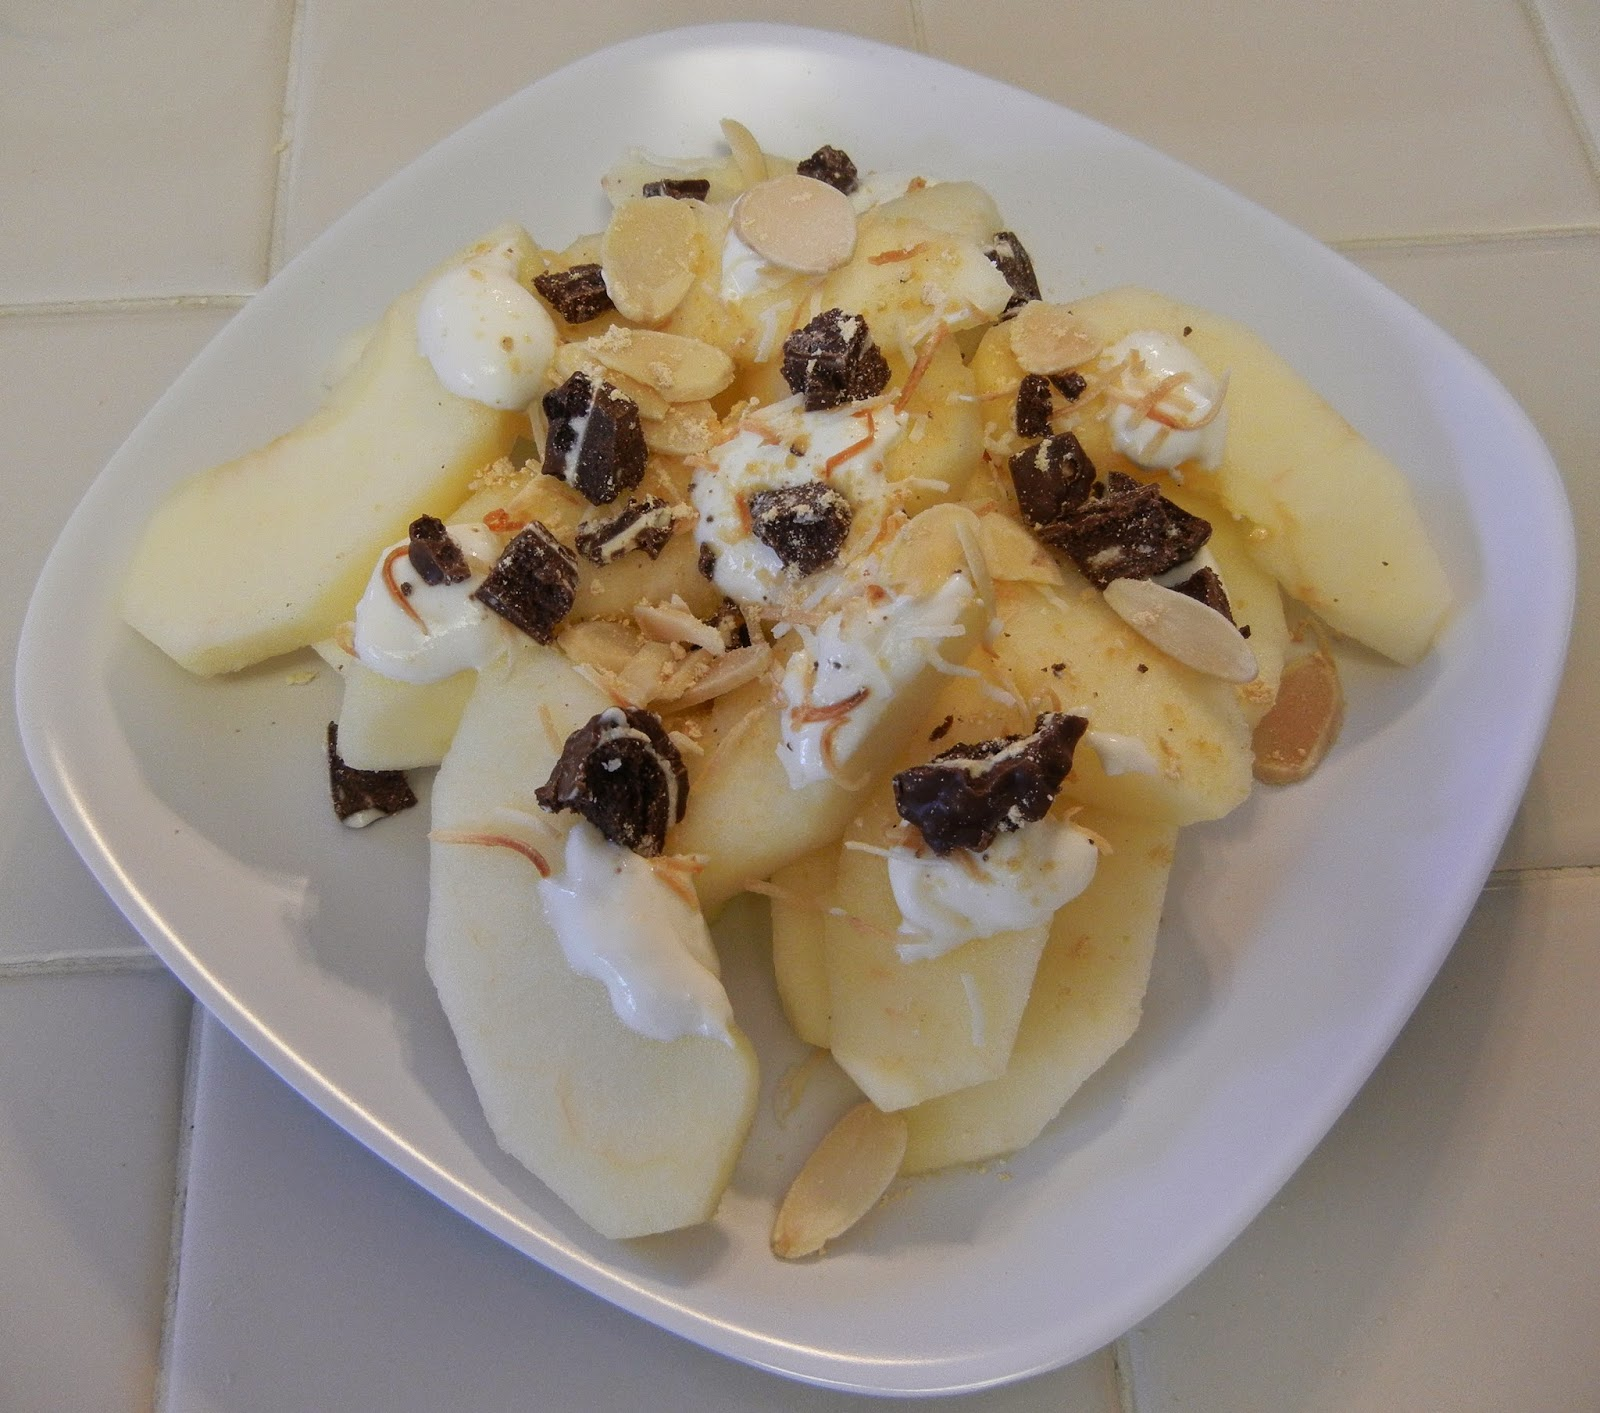 Eggface+Apple+Nachos Weight Loss Recipes Post Weight Loss Surgery Menus: A day in my pouch